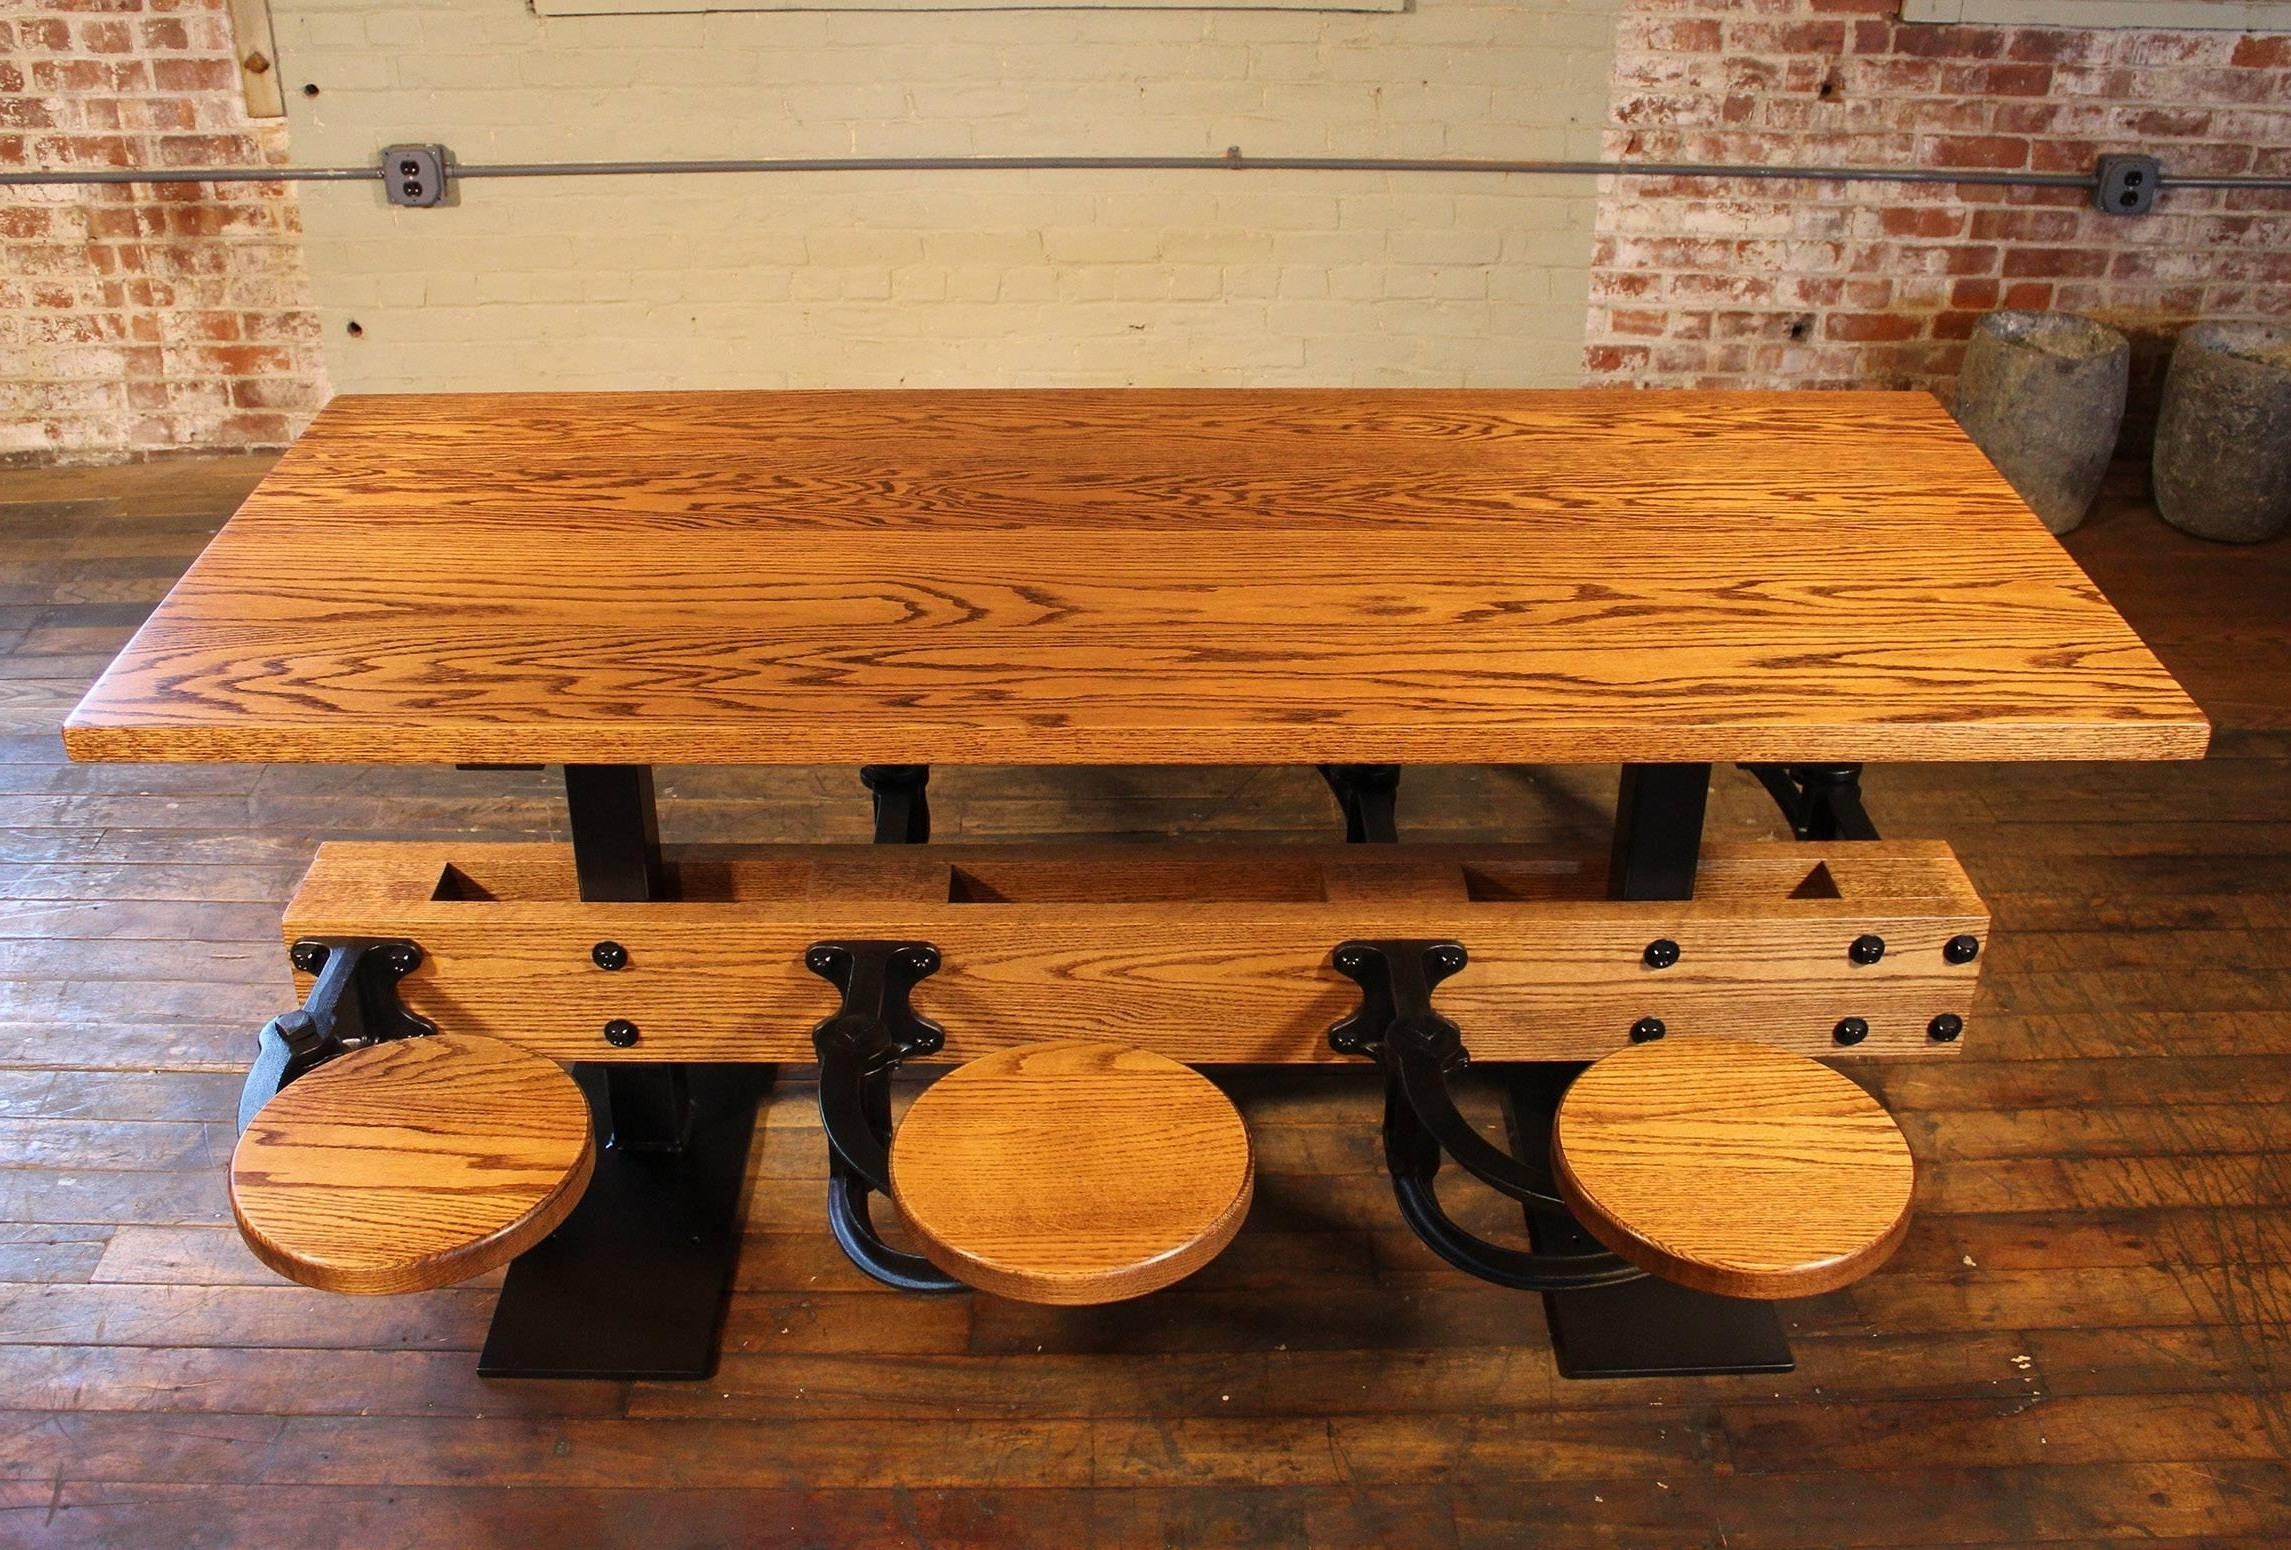 Trendy Dining Tables With Attached Stools Intended For Oak Cafe Style Dining Table With Attached Swing Out Seats For Sale (View 7 of 25)